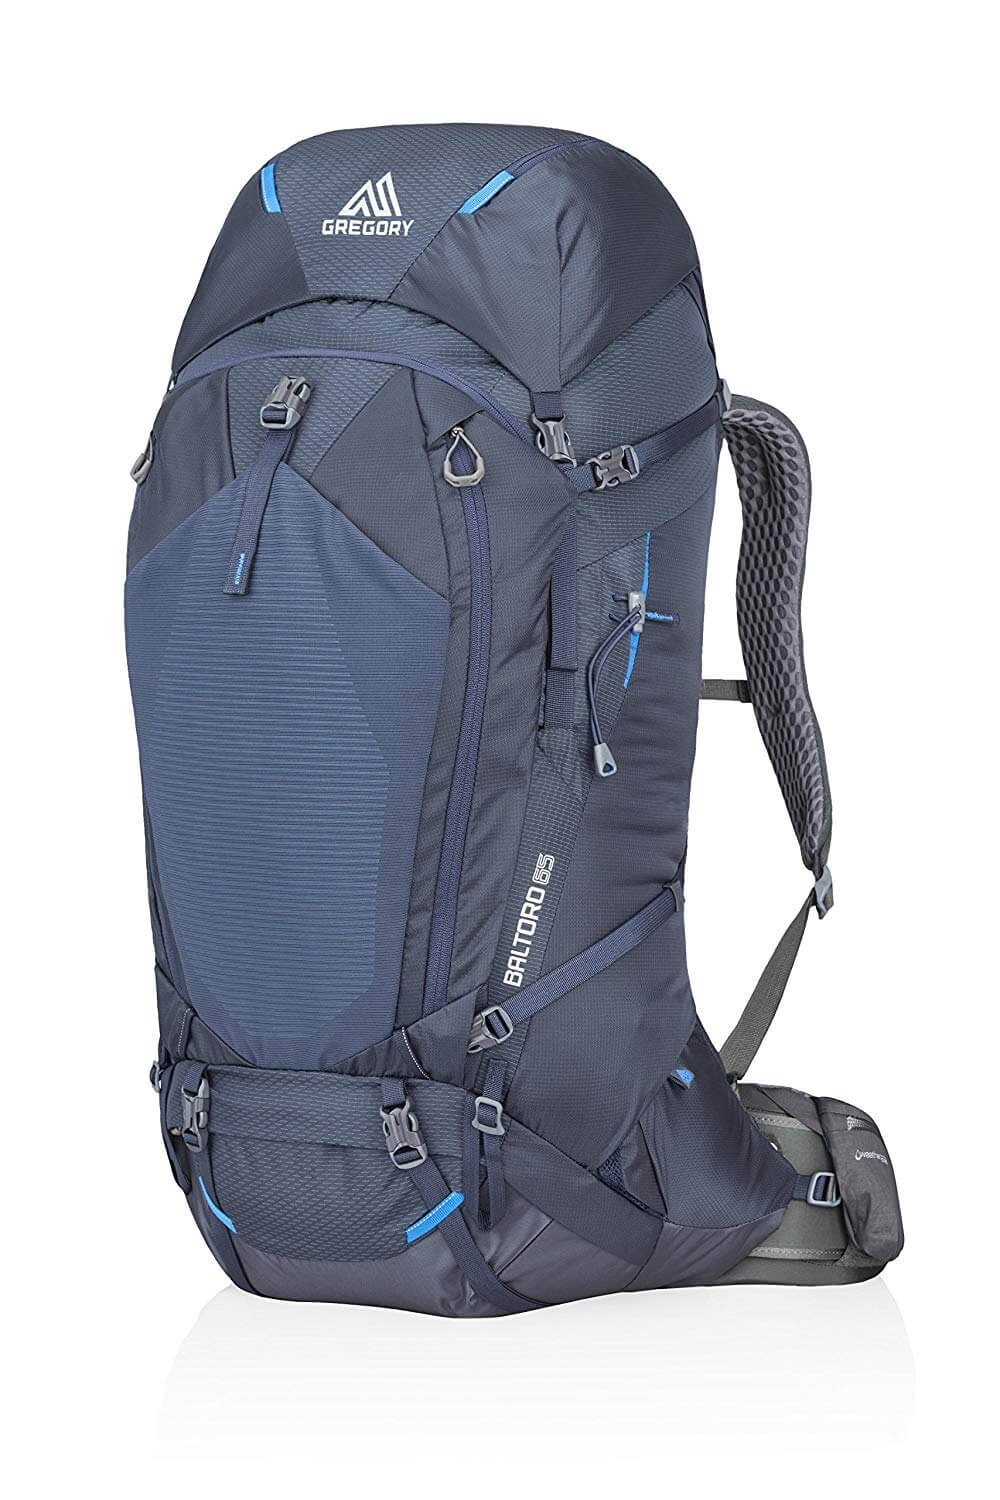 Gregory Mountain Camping backpack